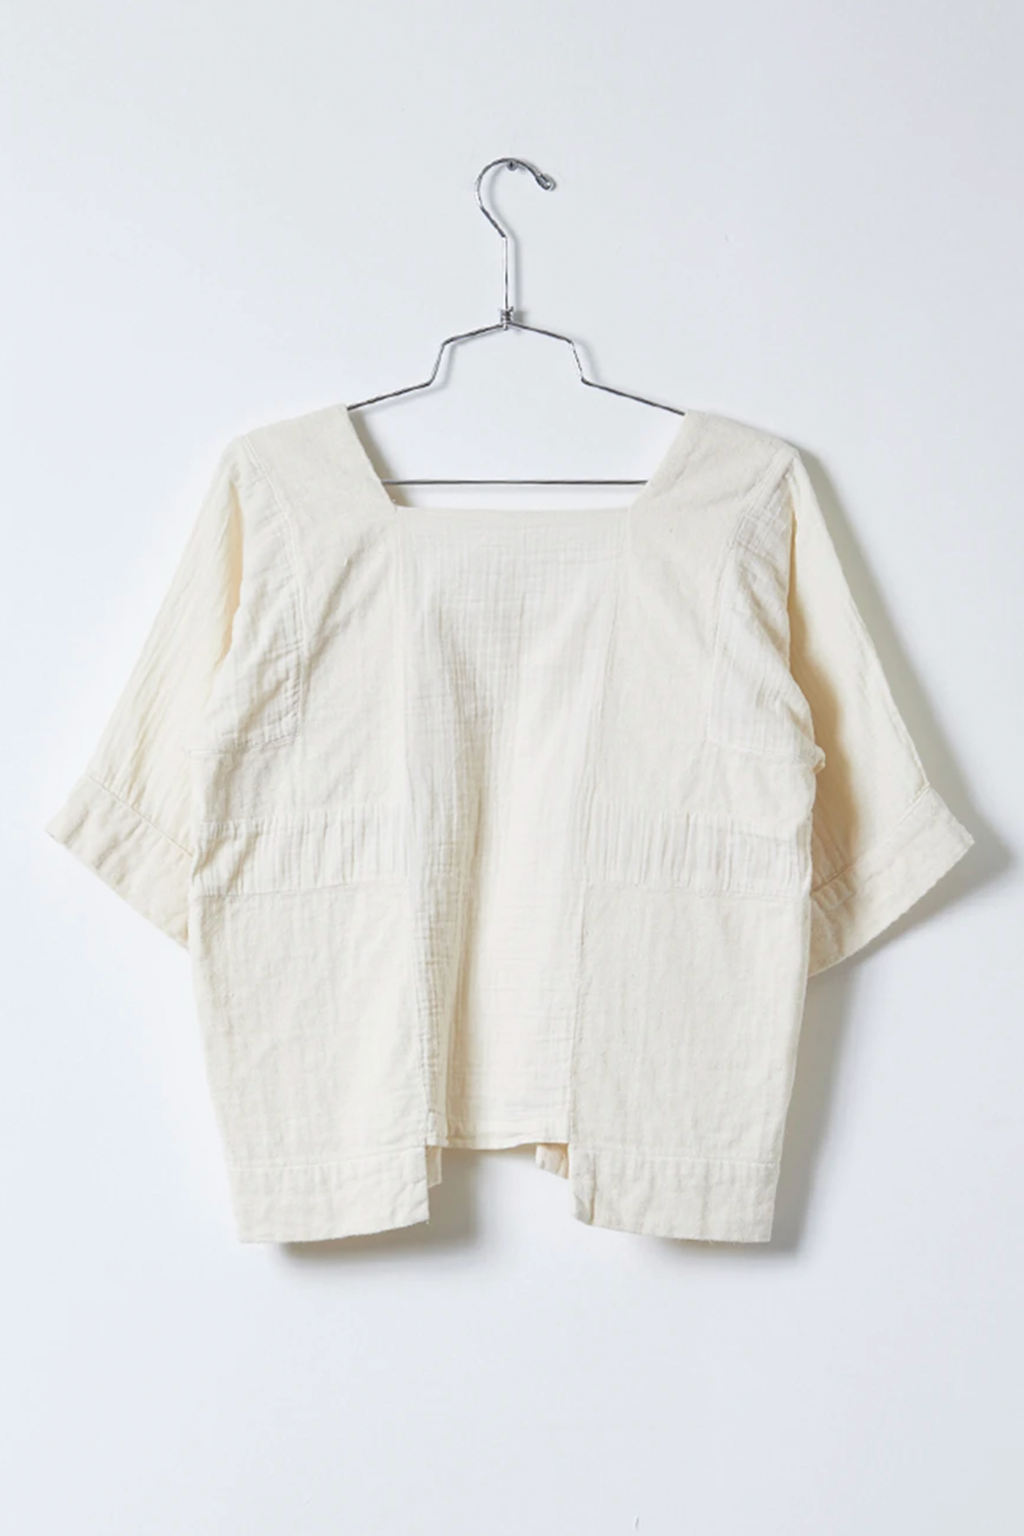 Atelier Delphine Block Top in Kinari